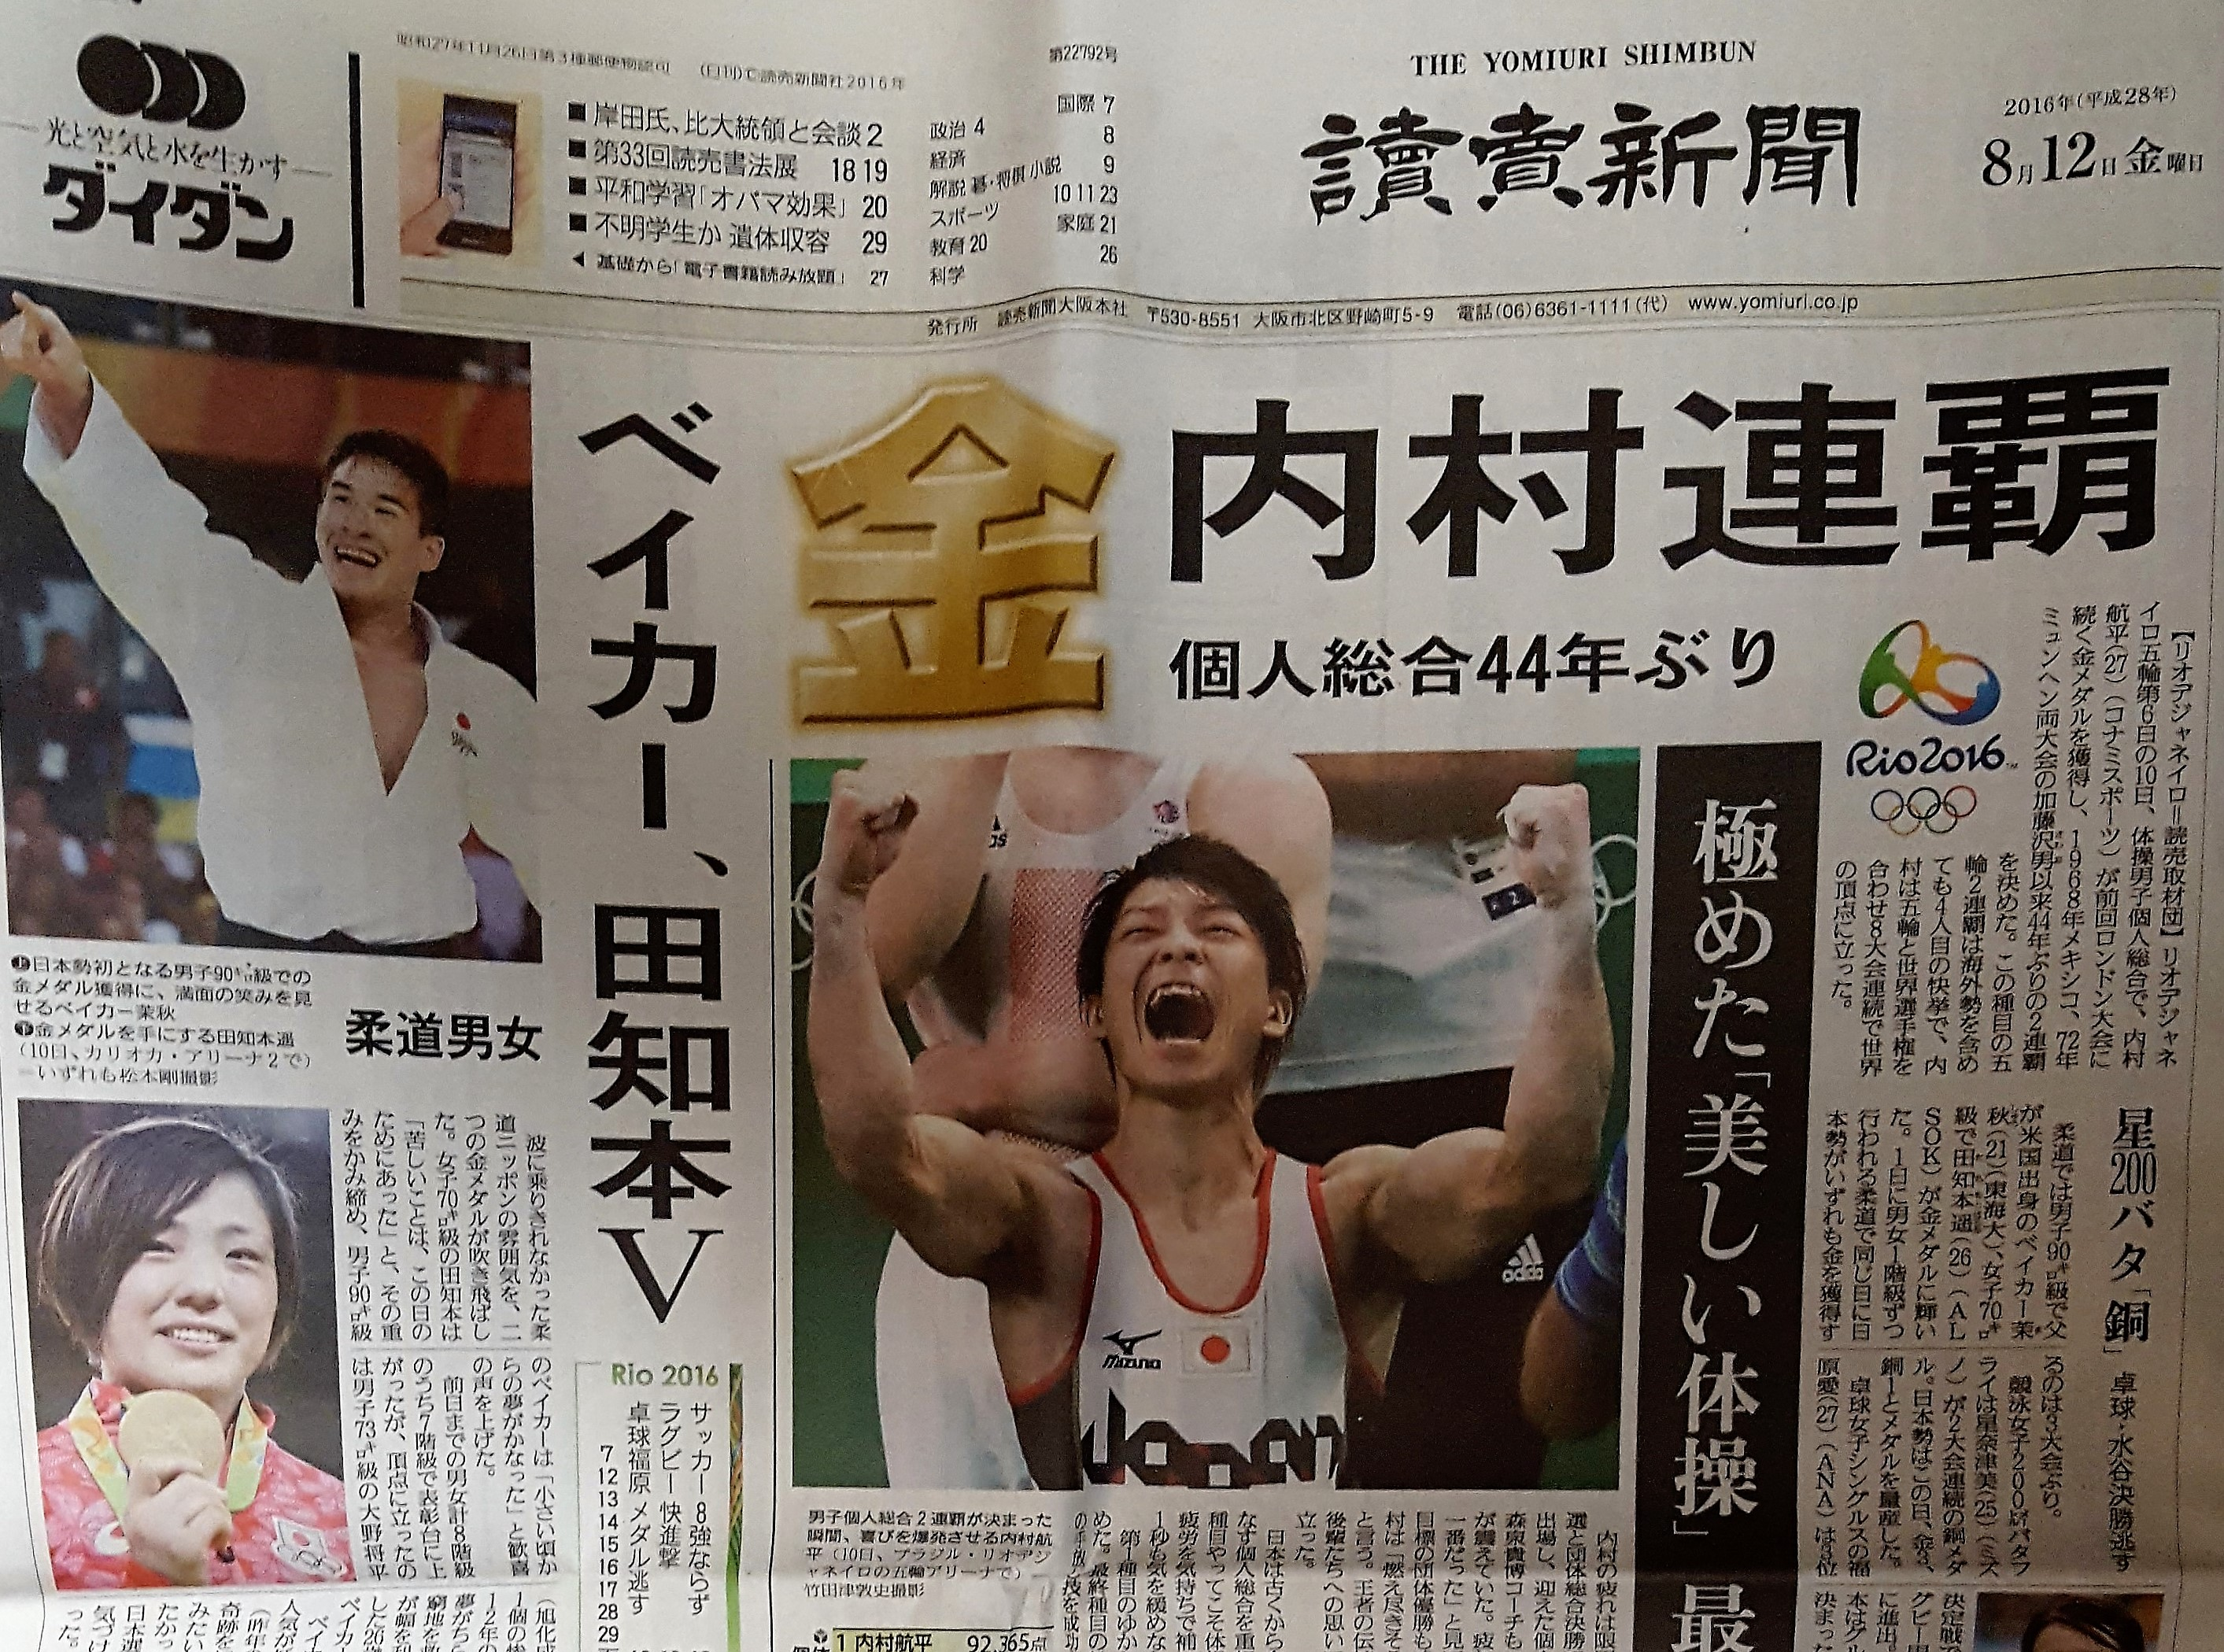 yomiuri front page 8 12 16